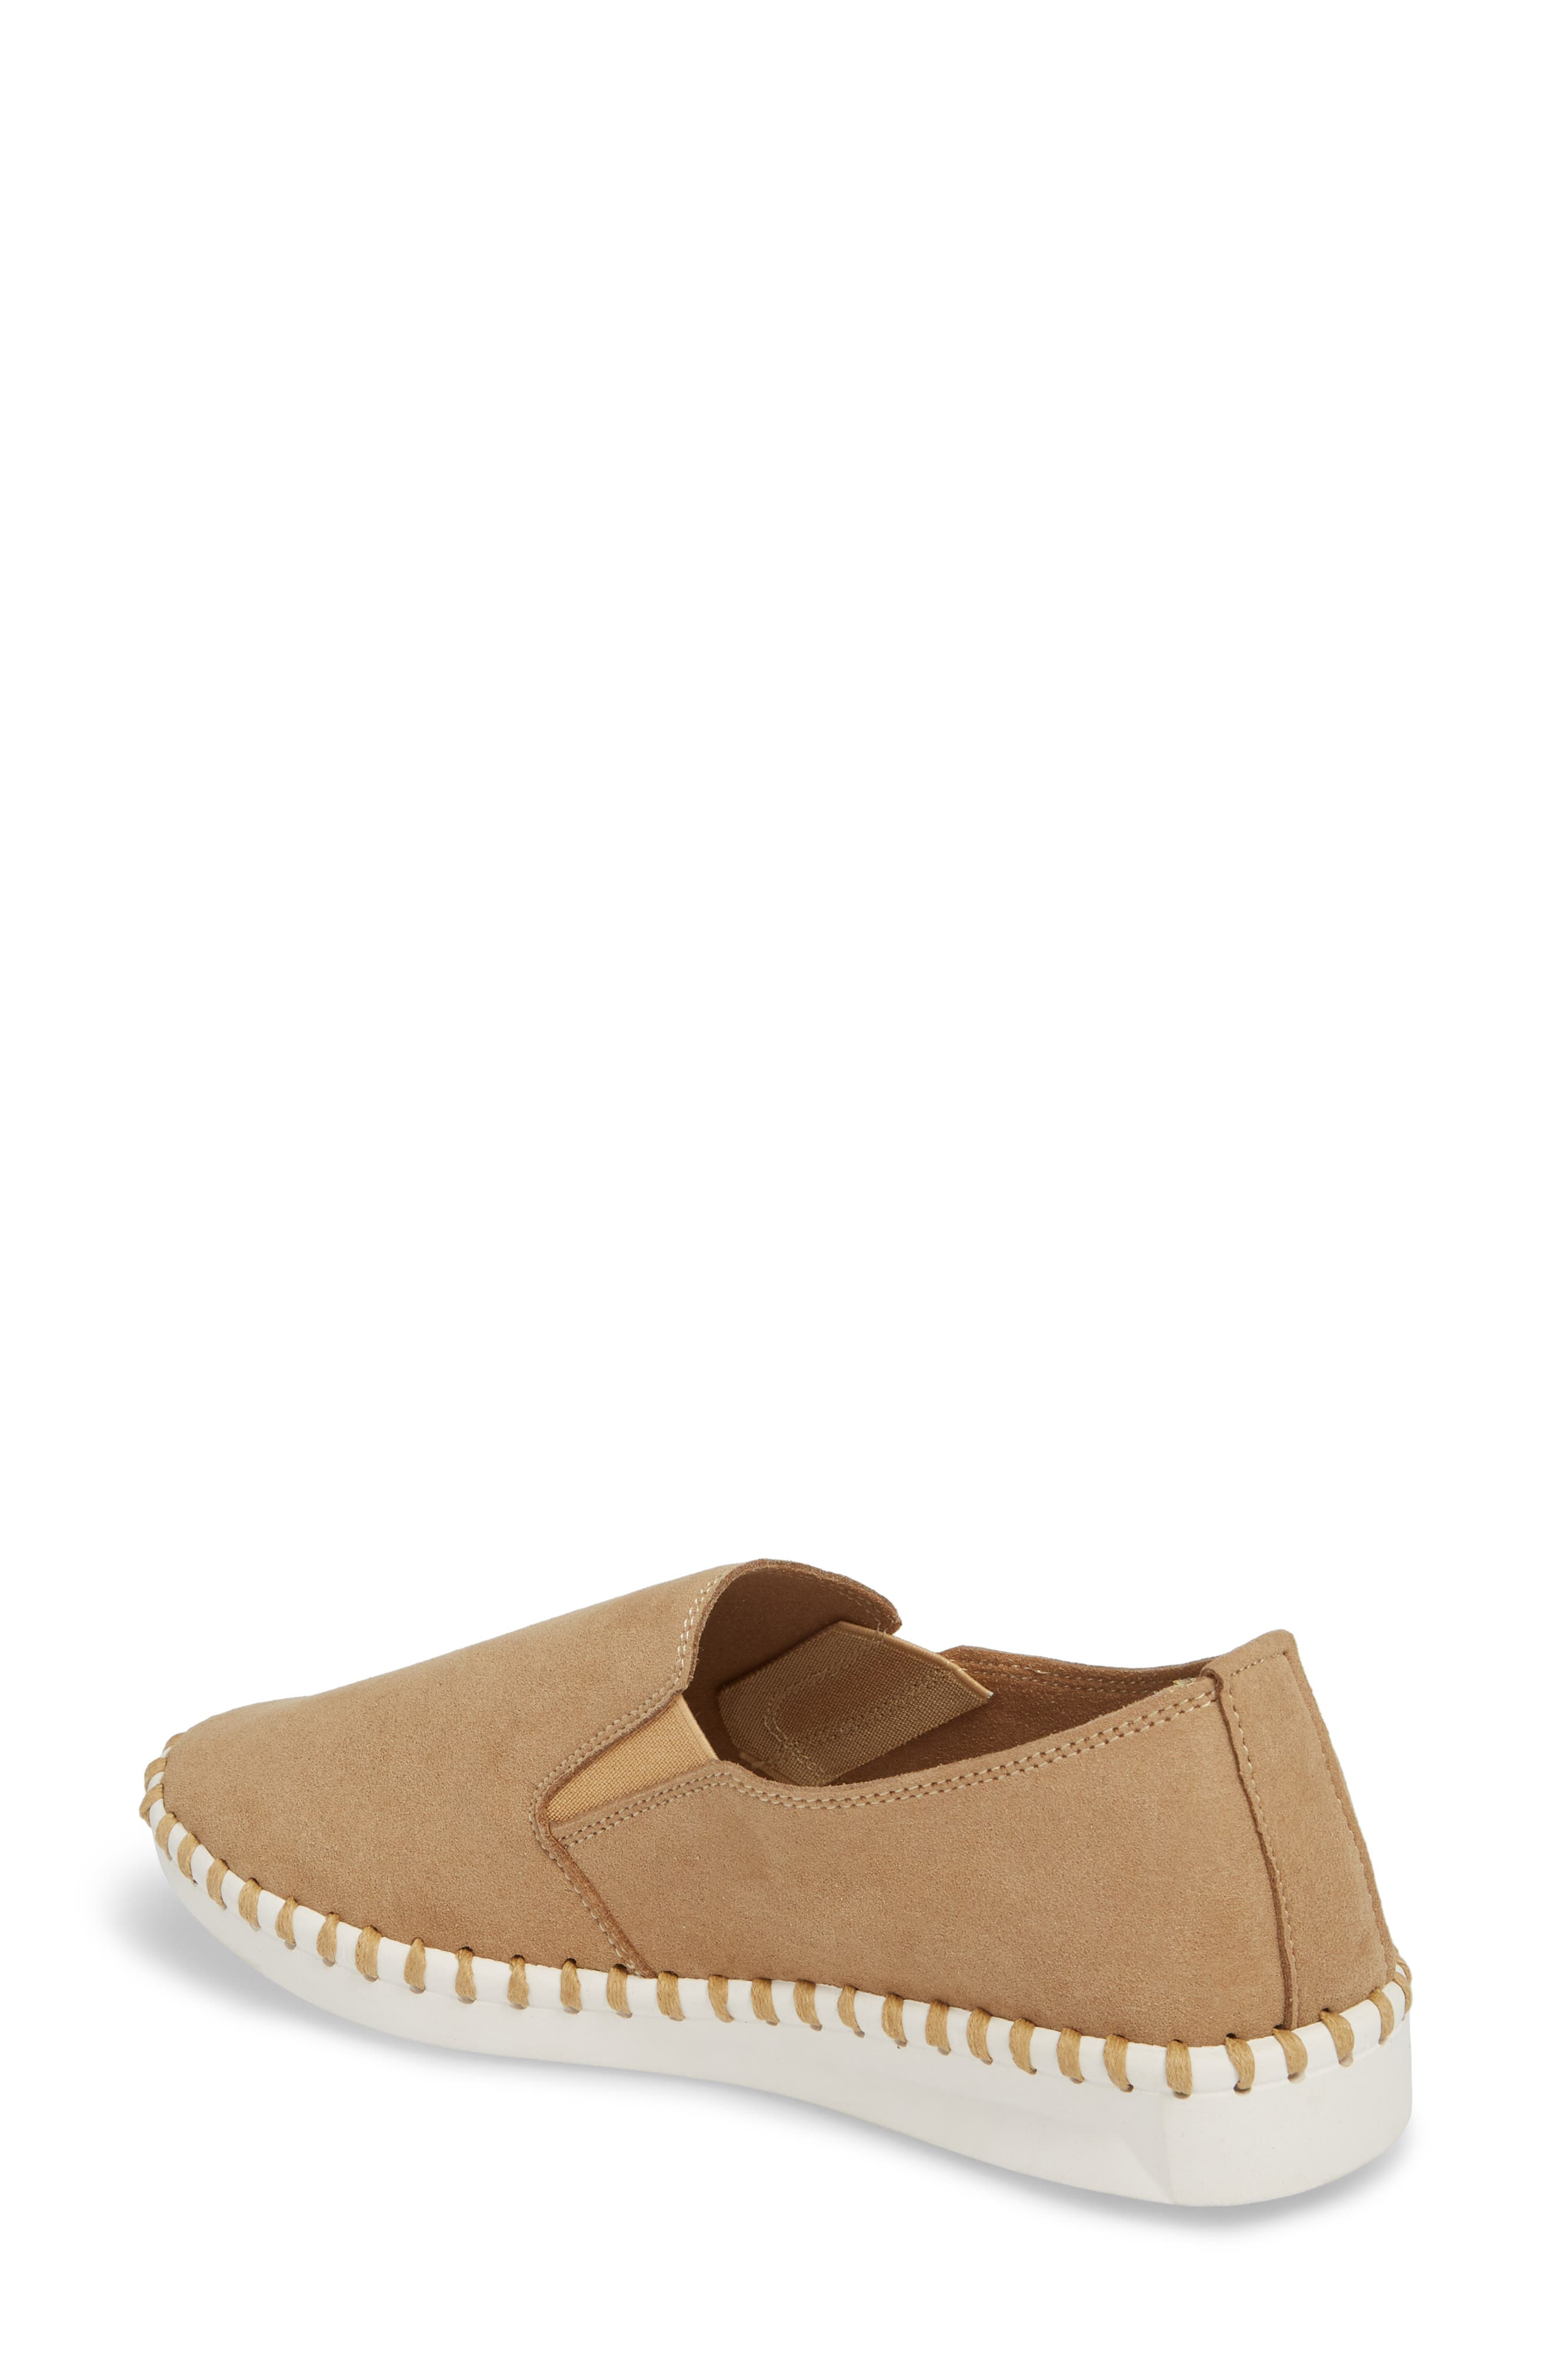 Salinas Waterproof Slip-On Sneaker,                             Alternate thumbnail 2, color,                             TAN FABRIC